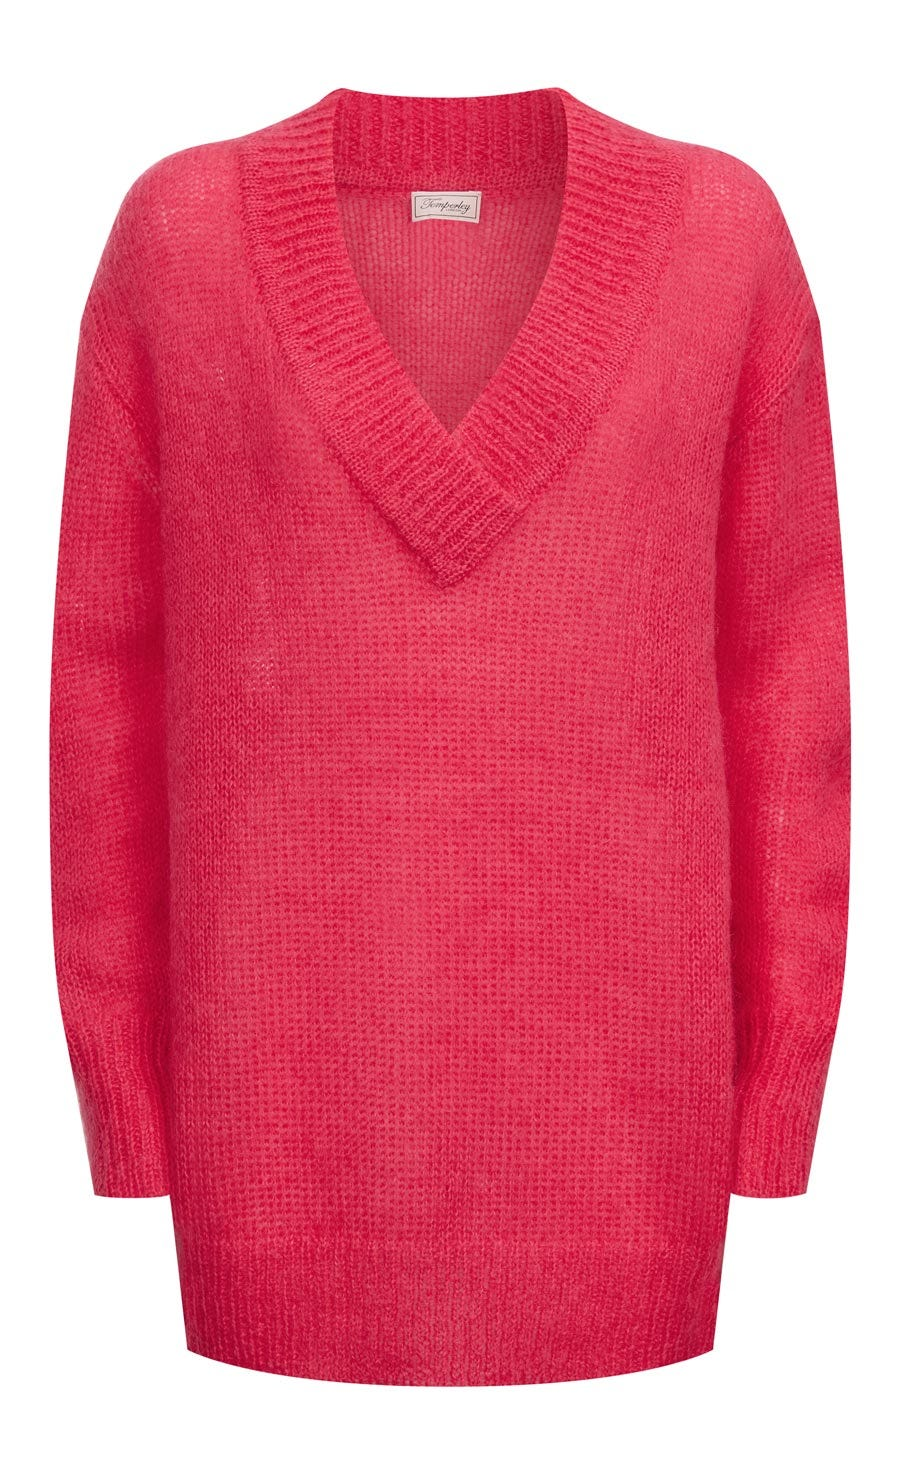 Iron V Neck Jumper, Flamingo